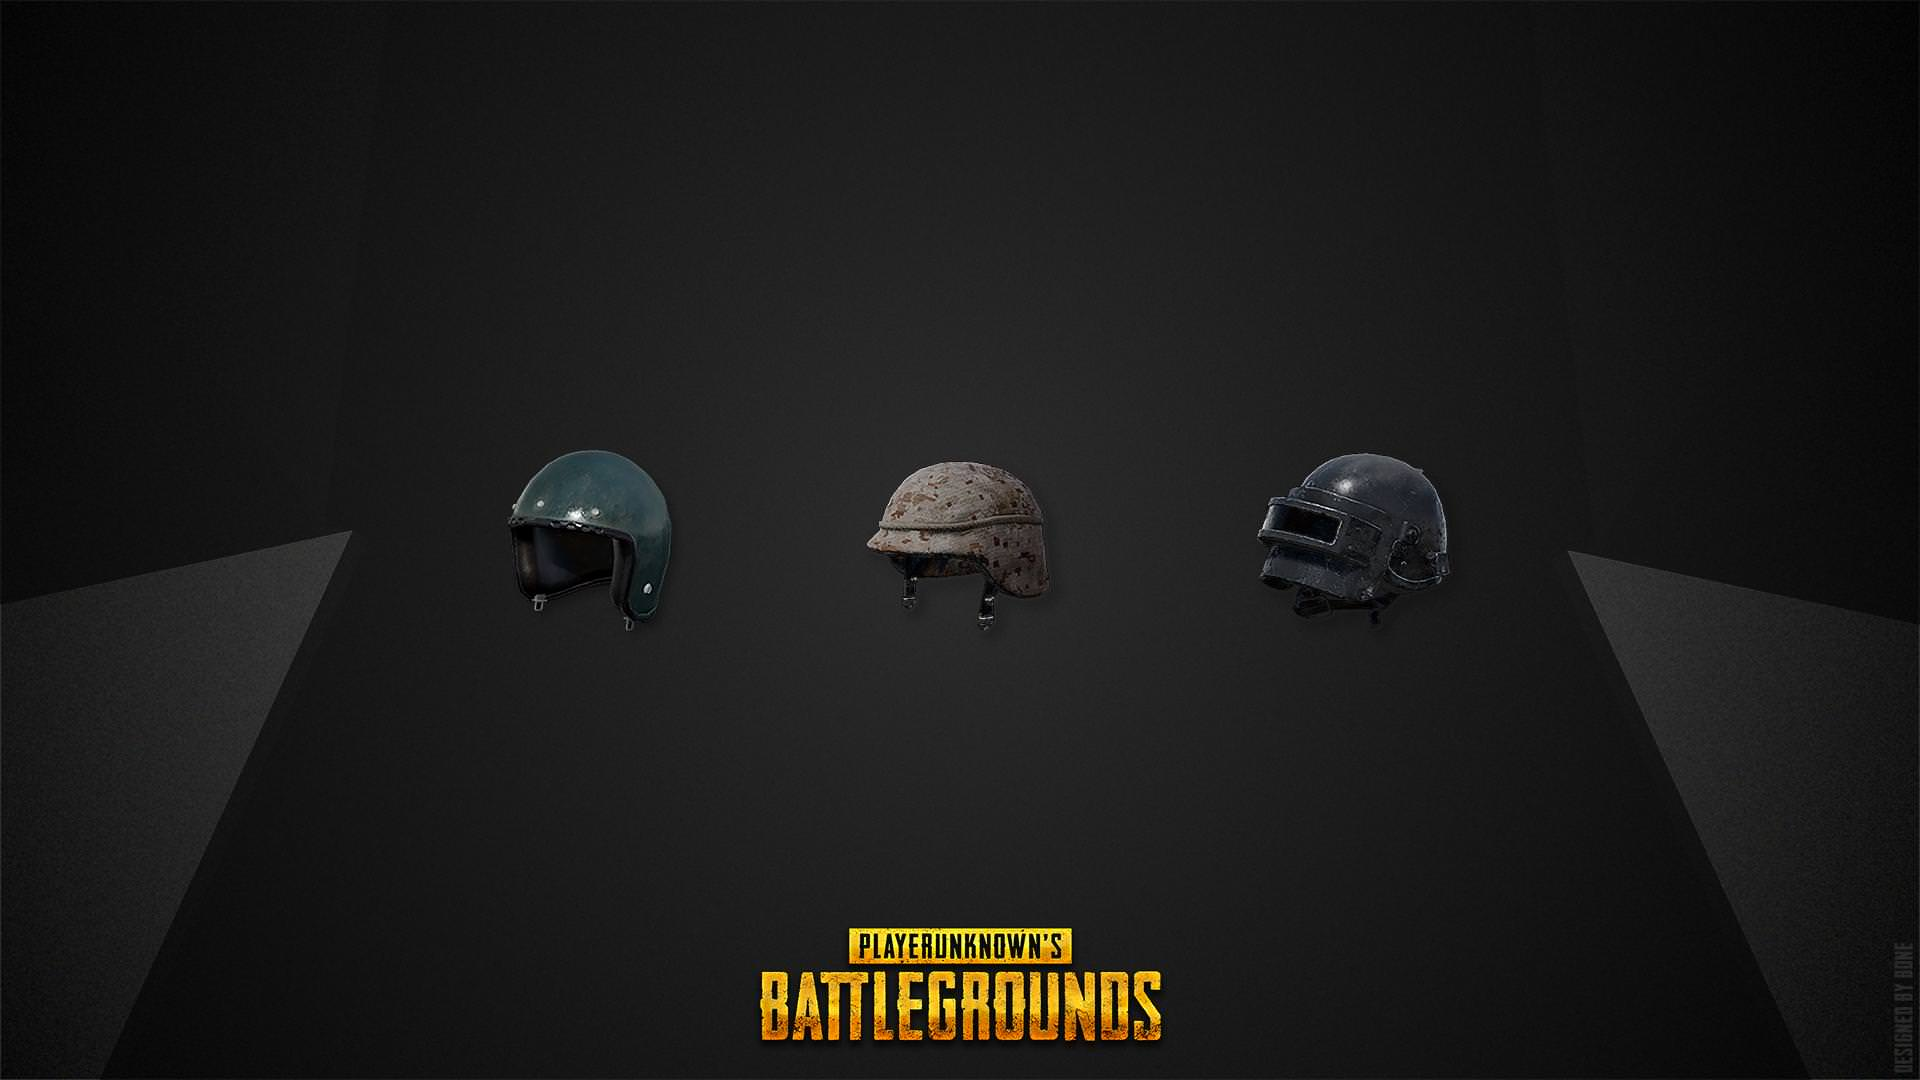 Pubg Mobile Wallpapers For Phone: PUBG Black Wallpapers